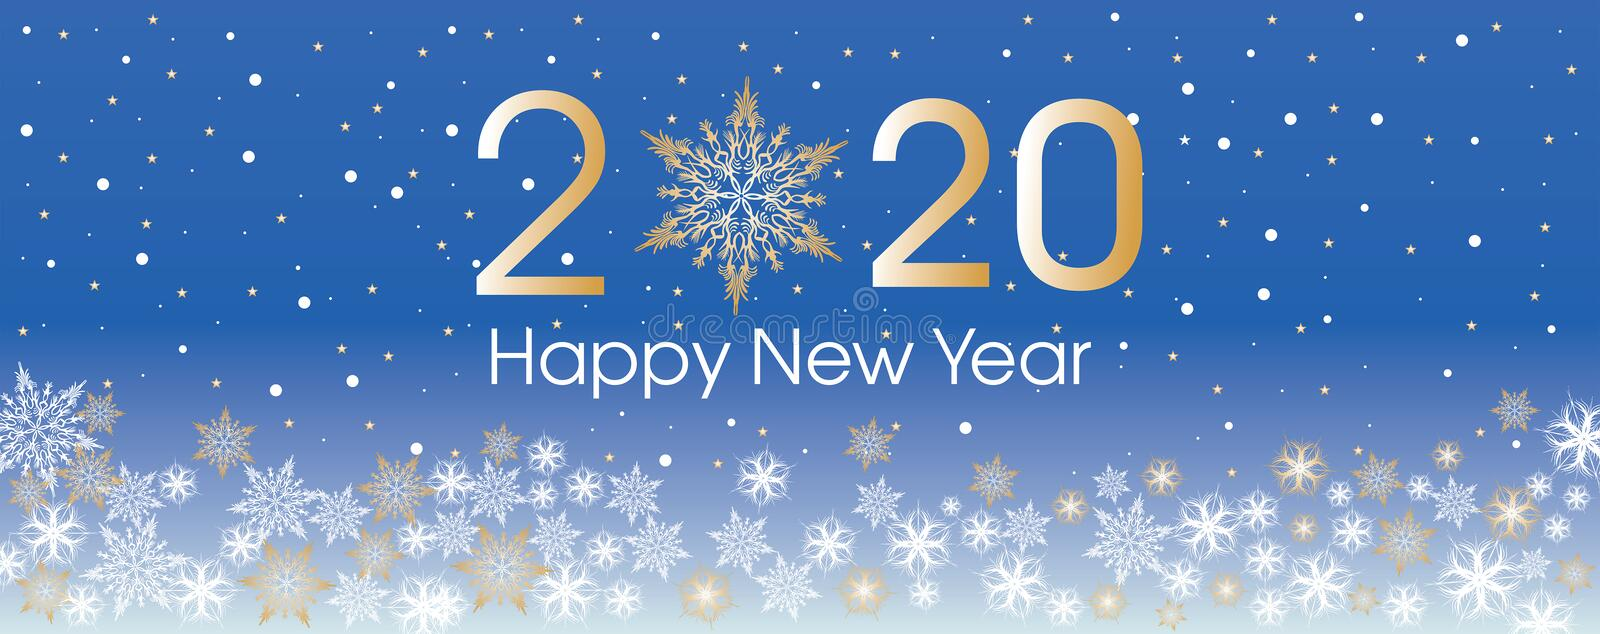 2020 Happy New Year card template. Design patern snowflakes. White, gold and blue color vector illustration